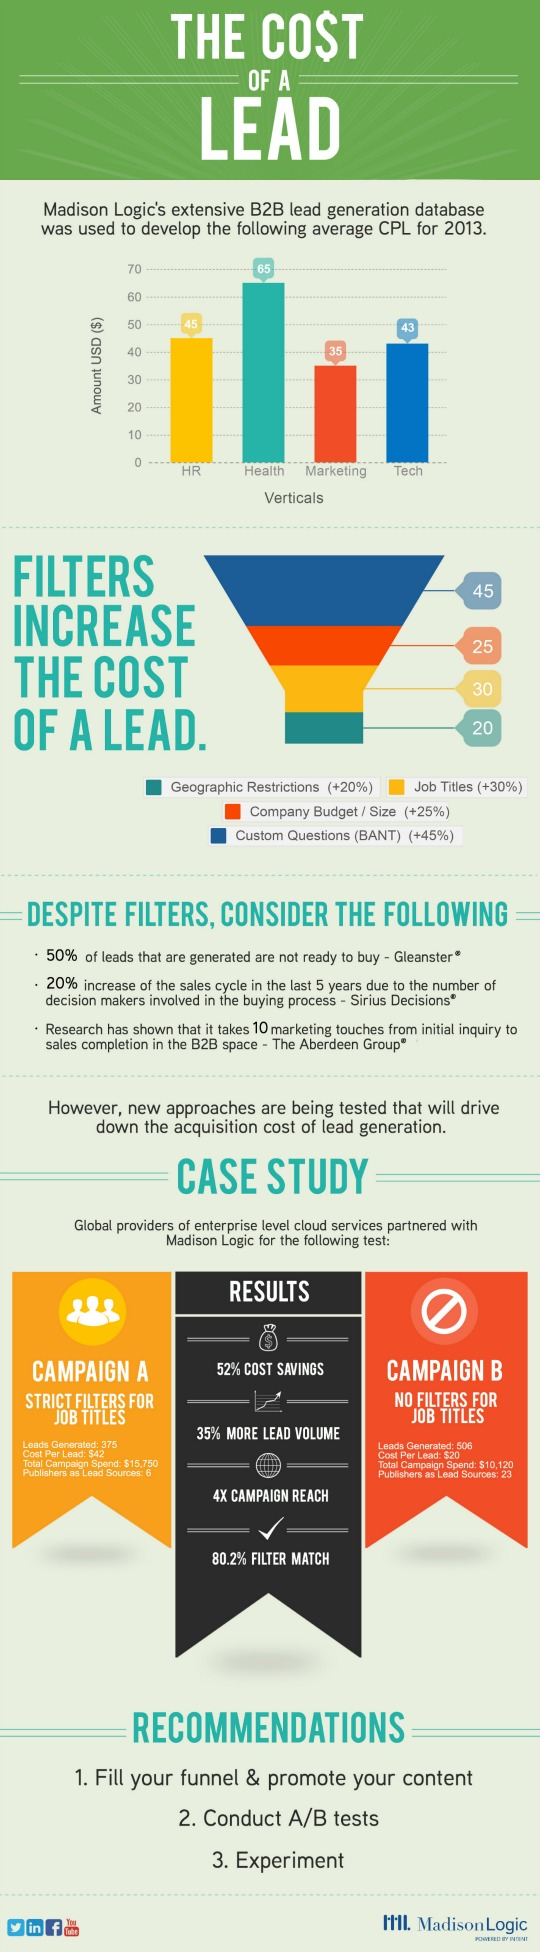 Lead Generation Infographic B2b Lead Generation Cost